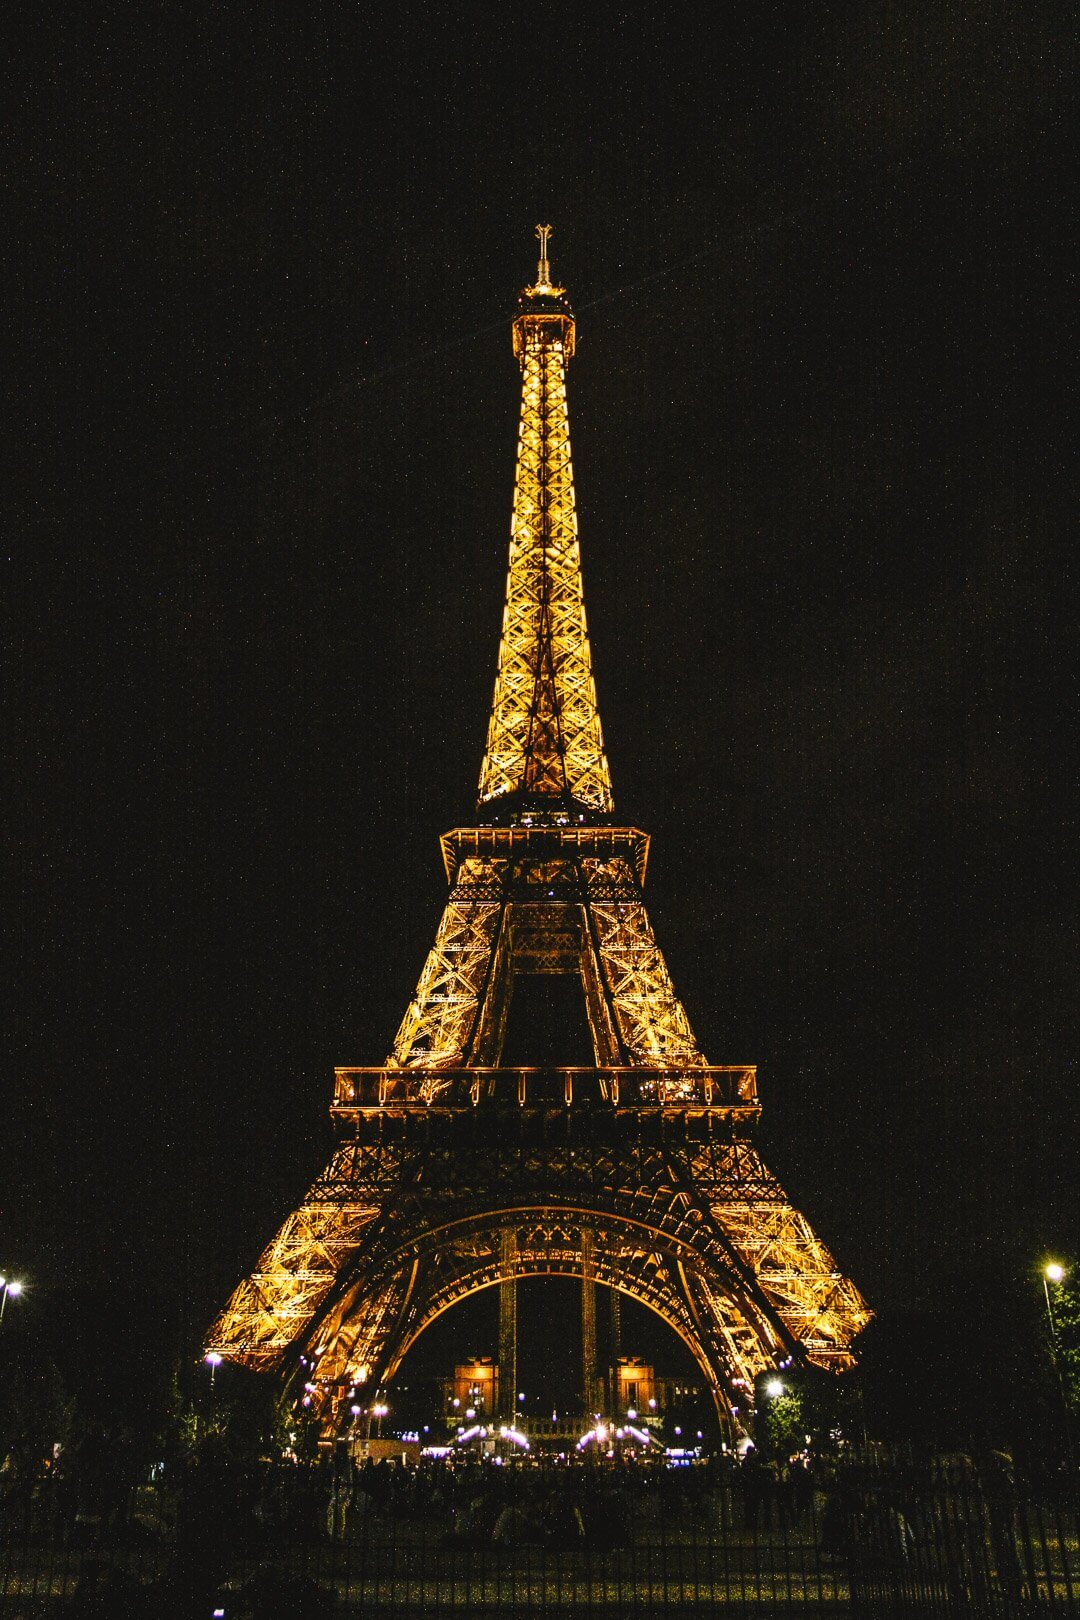 The Eiffel Tower lit up with lights at night in Paris, France